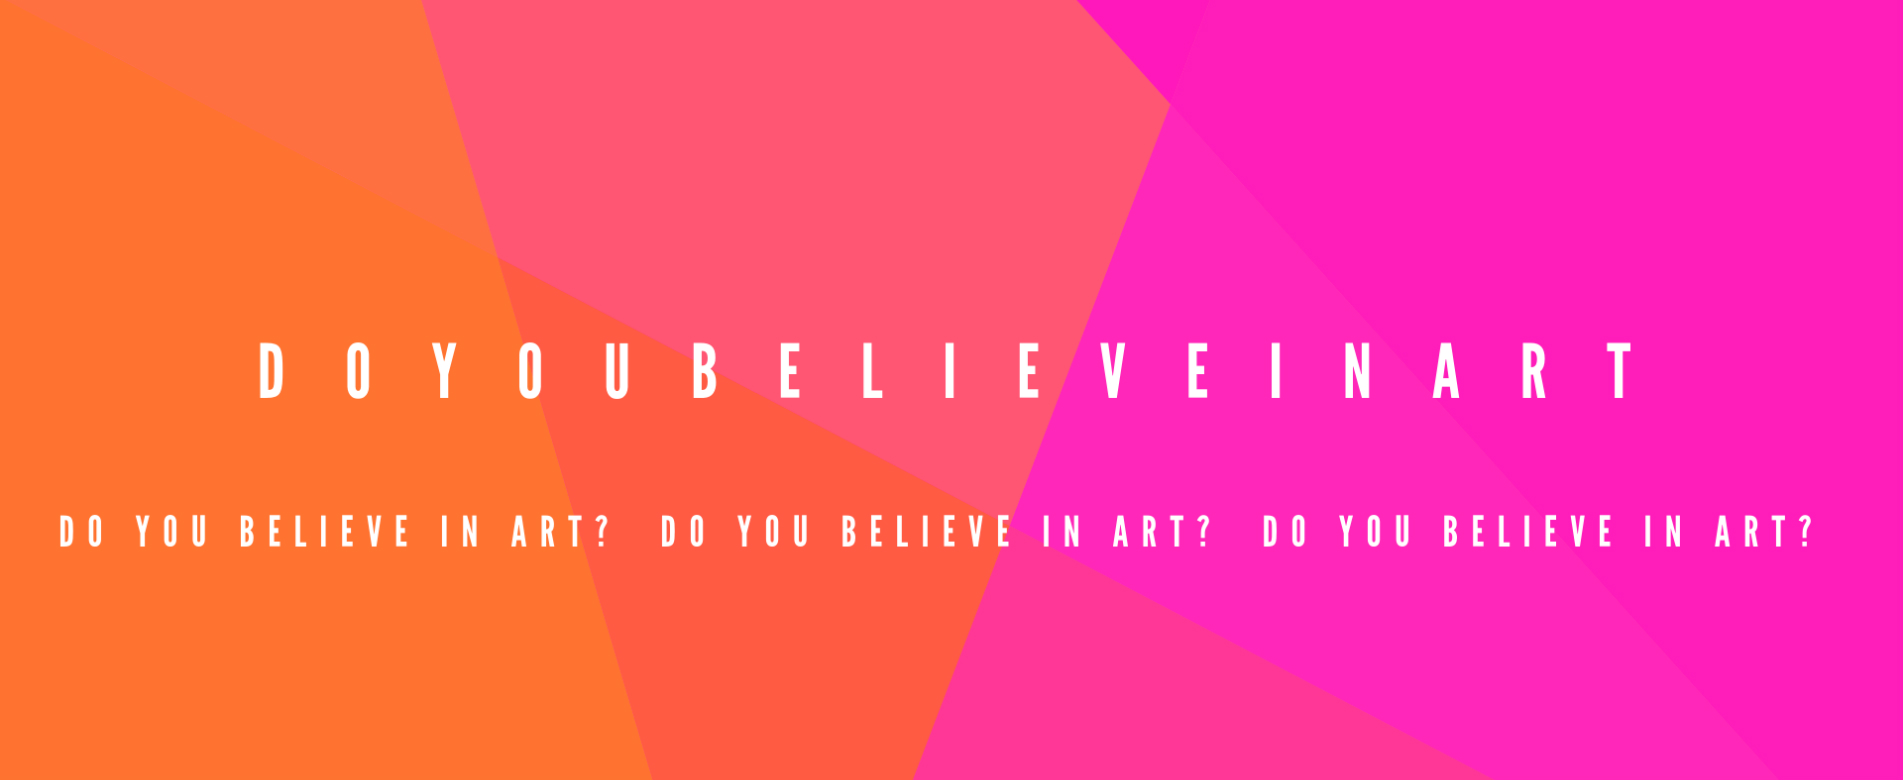 DO-YOU-BELIEVE-IN-ART-5-